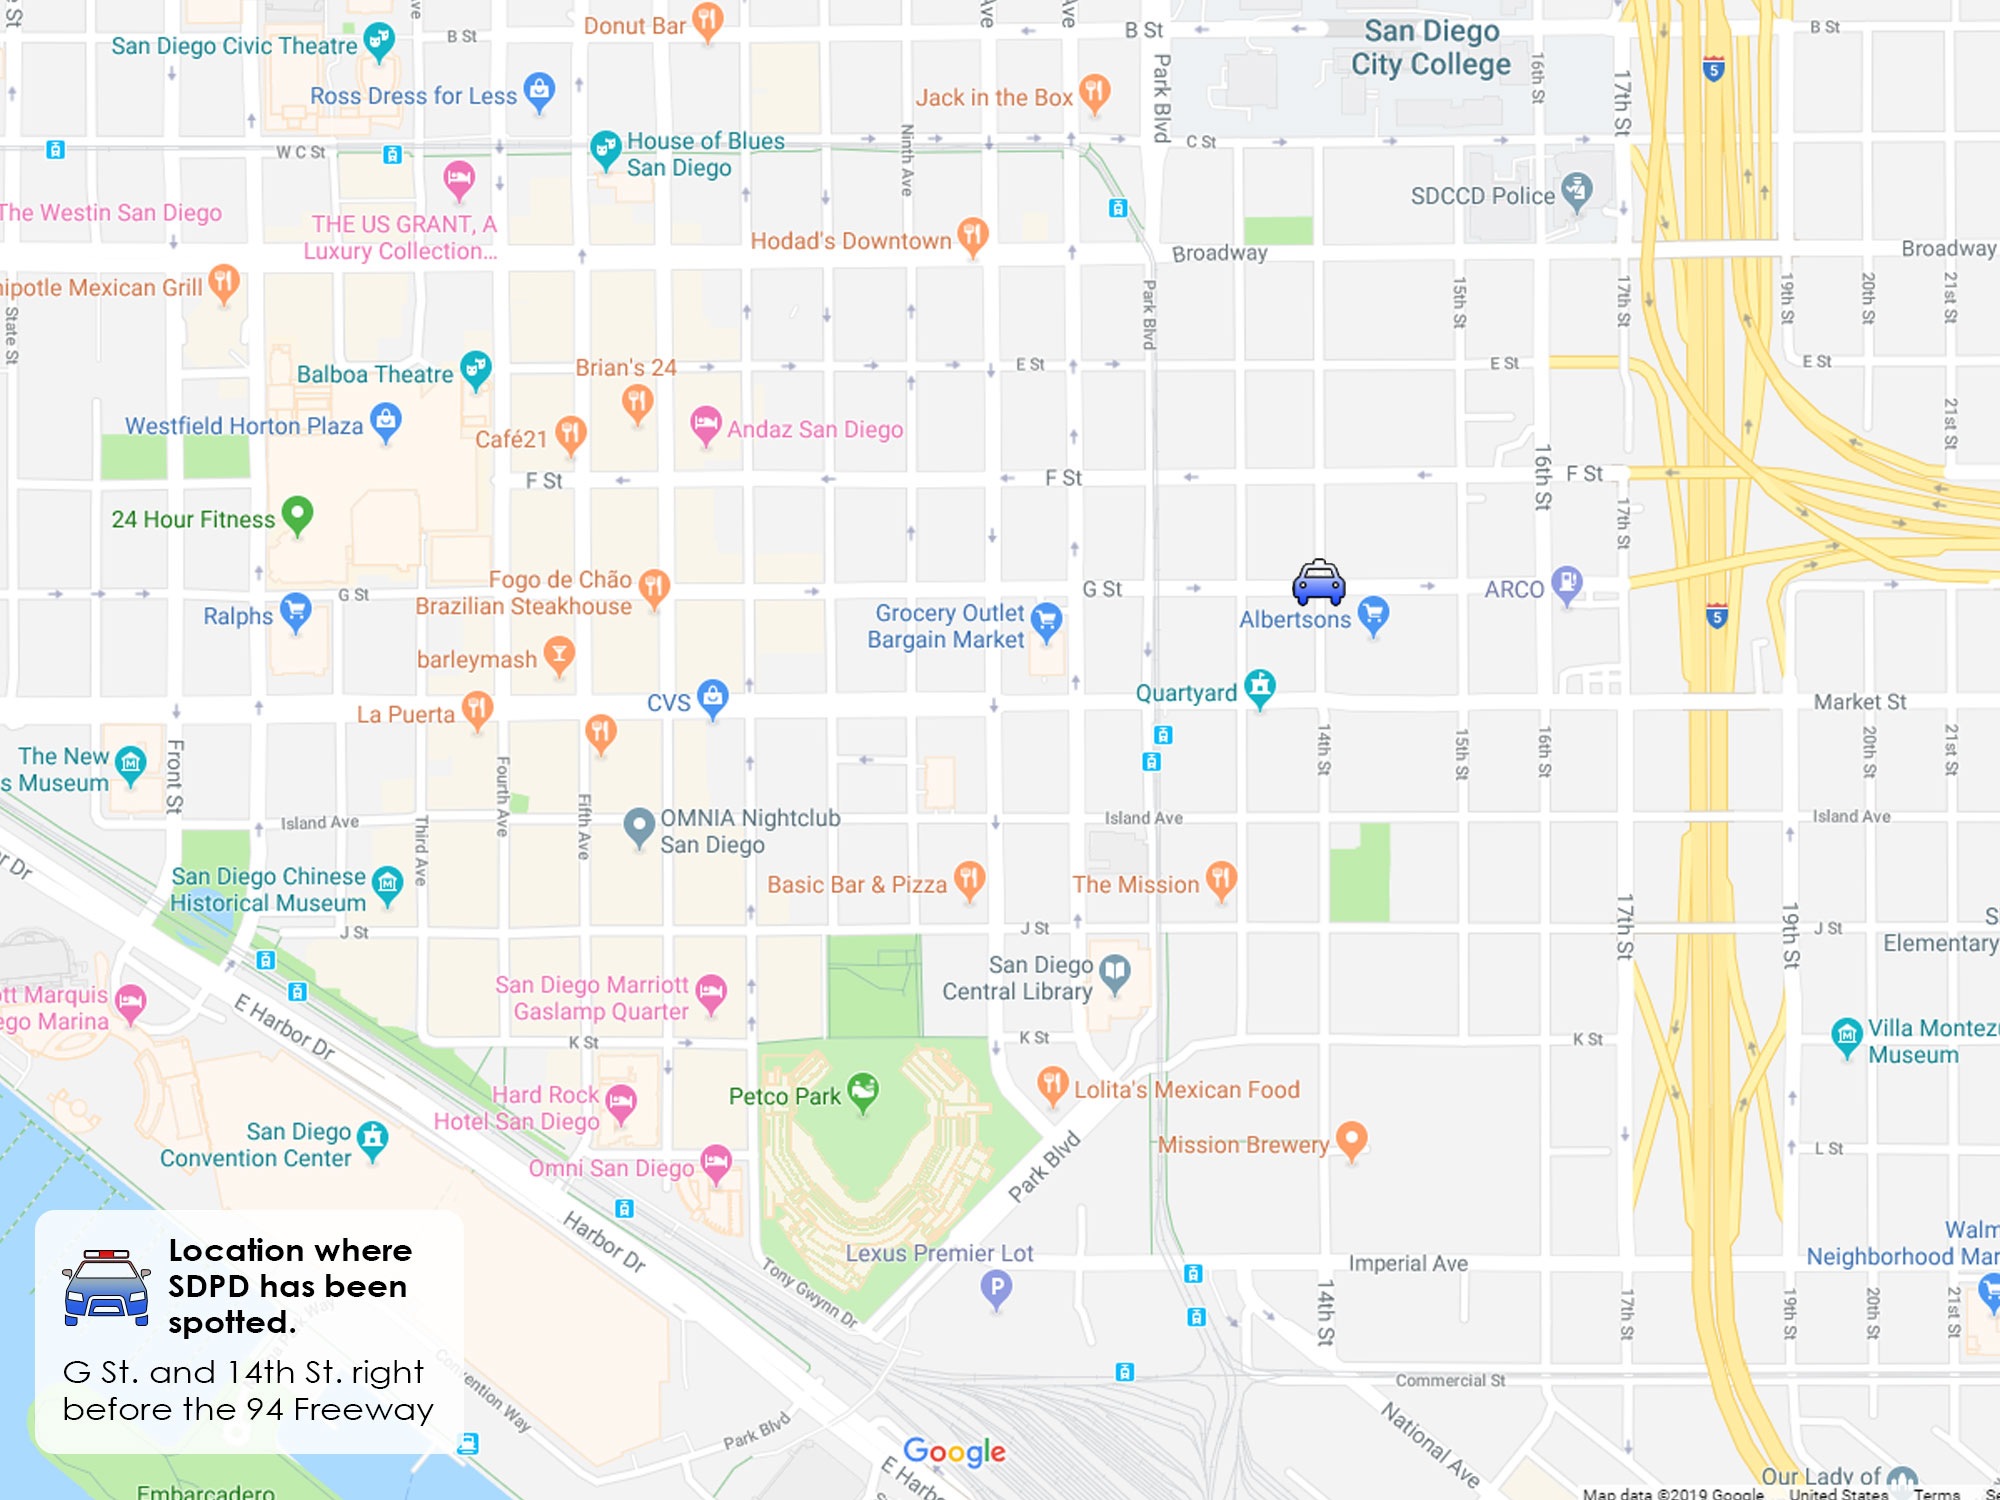 San Diego DUI Checkpoints G street Downtown